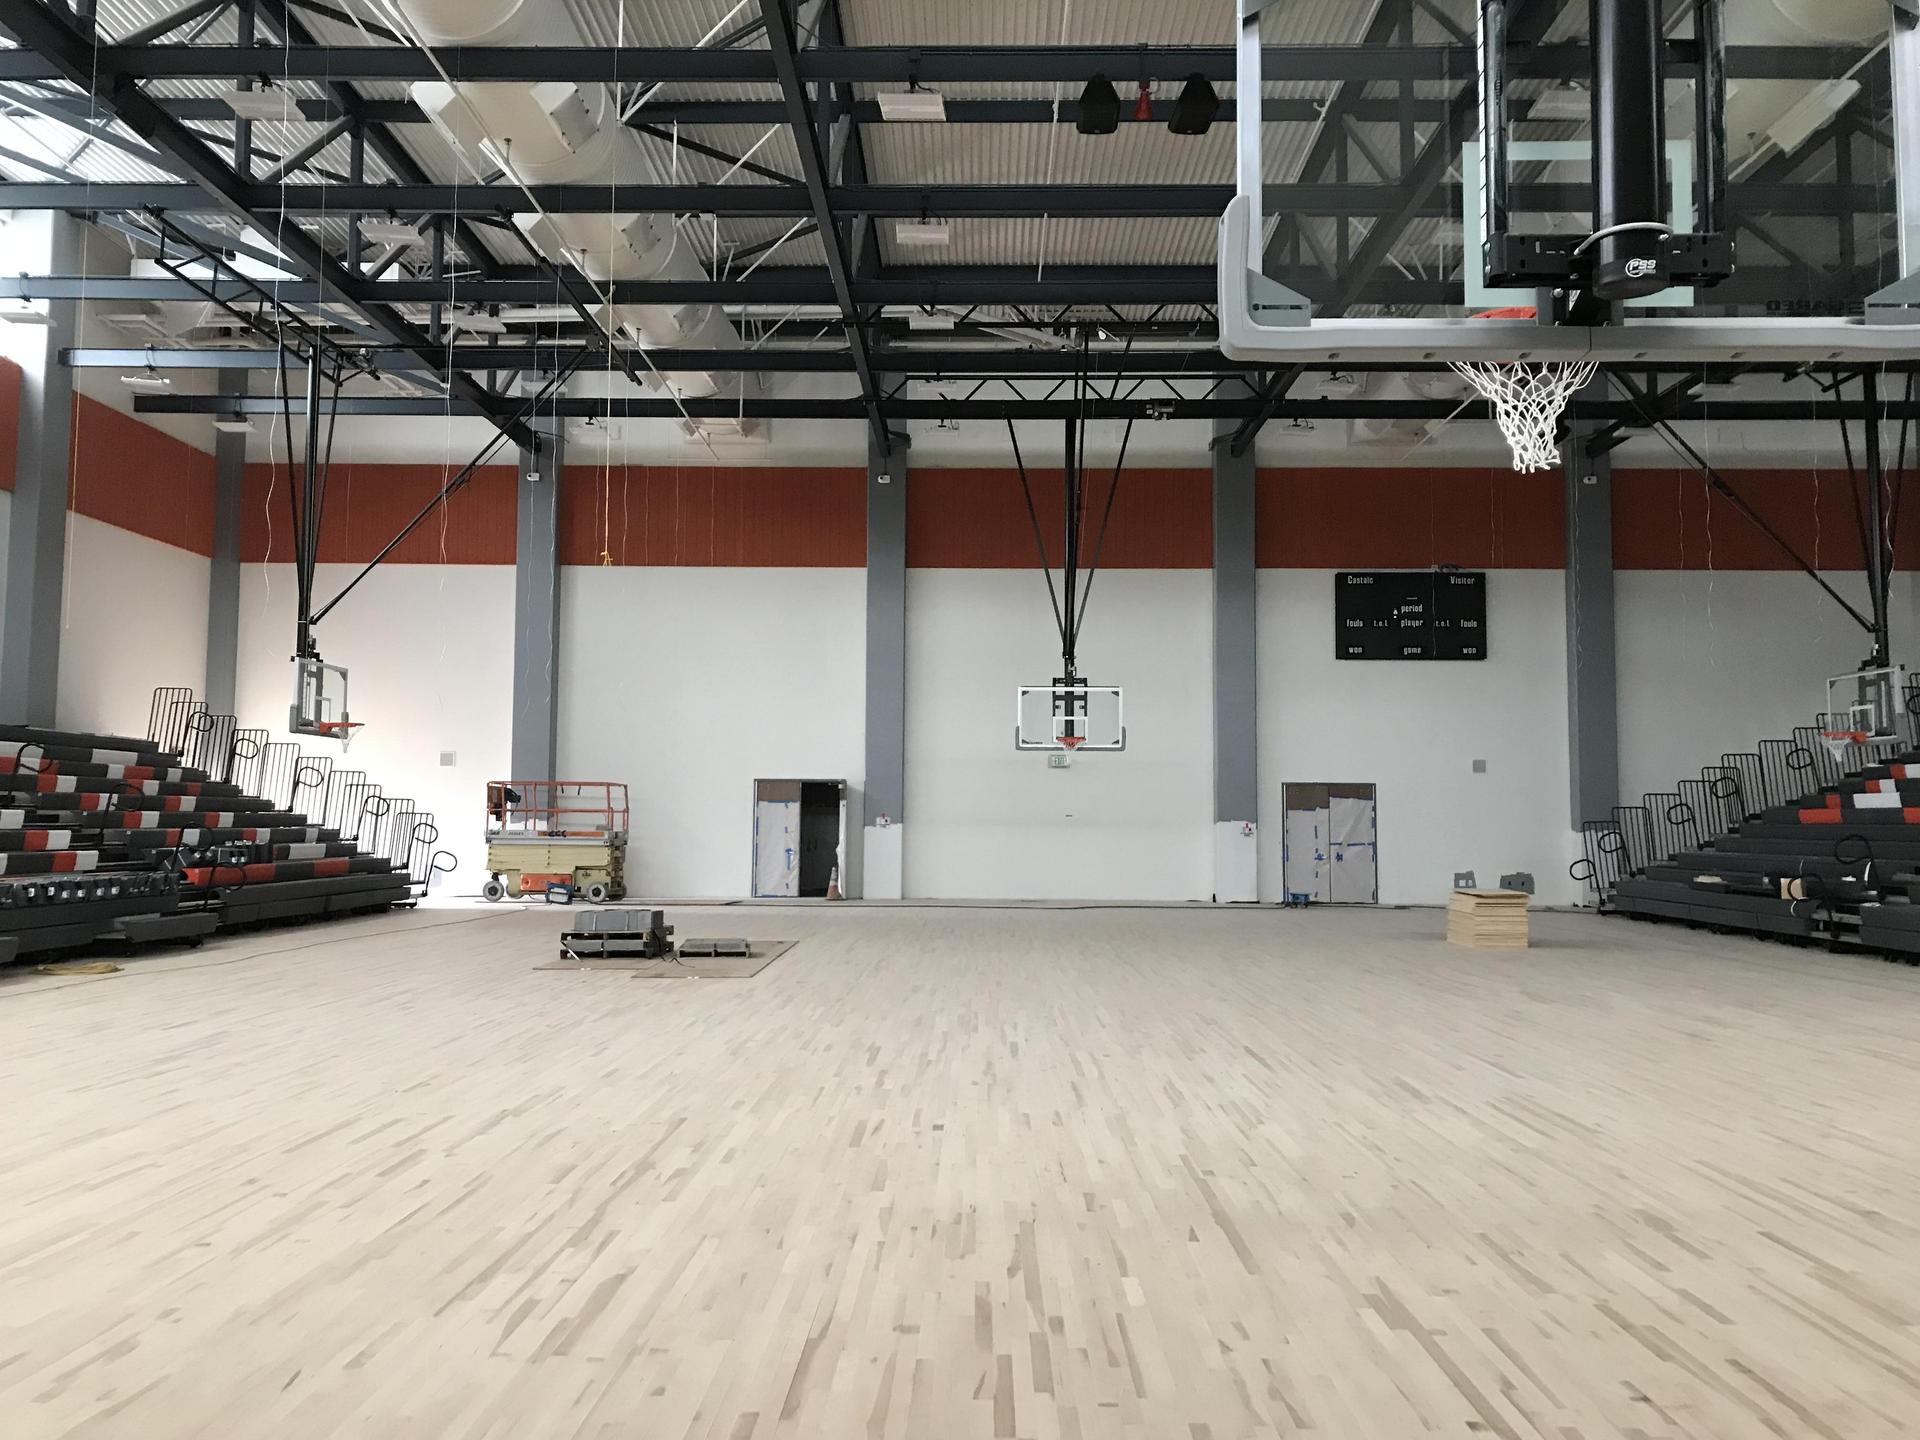 Interior photo of Castaic High School gym with bleachers and basketball hoops